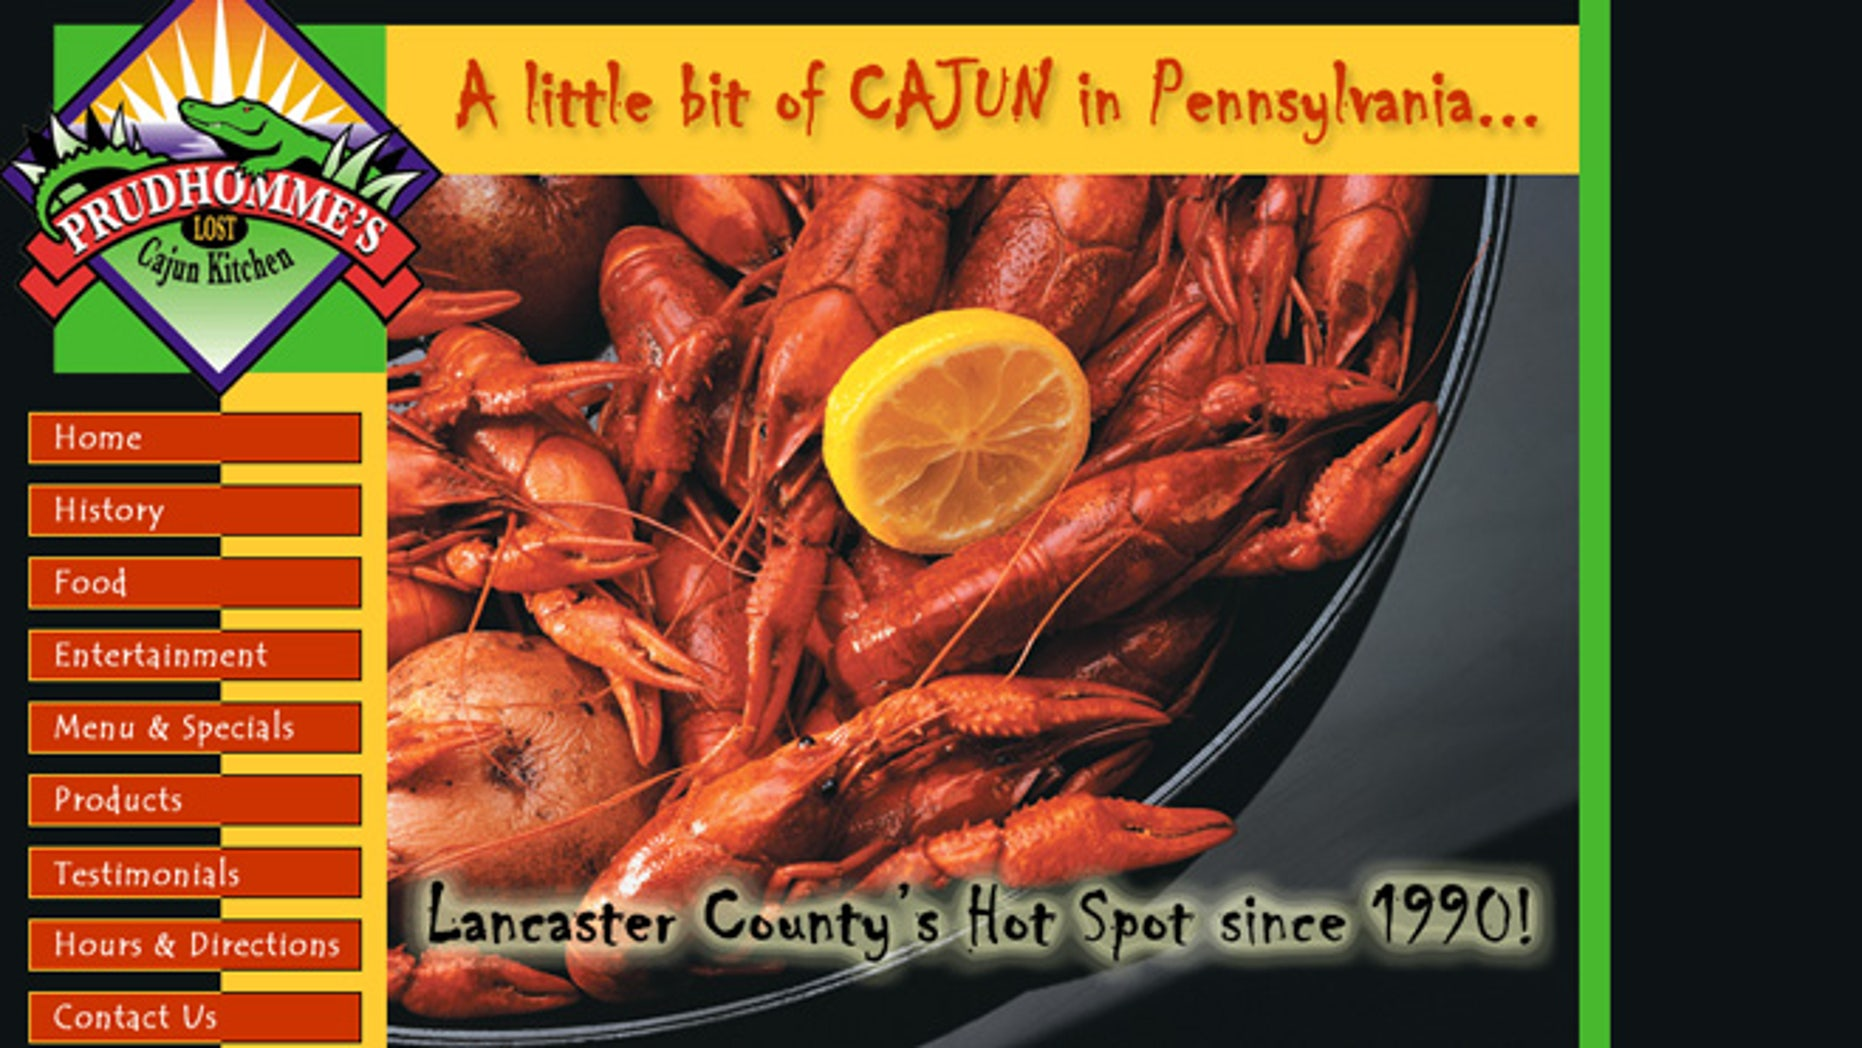 Screen grab of the website for Prudhomme's Lost Cajun Kitchen.